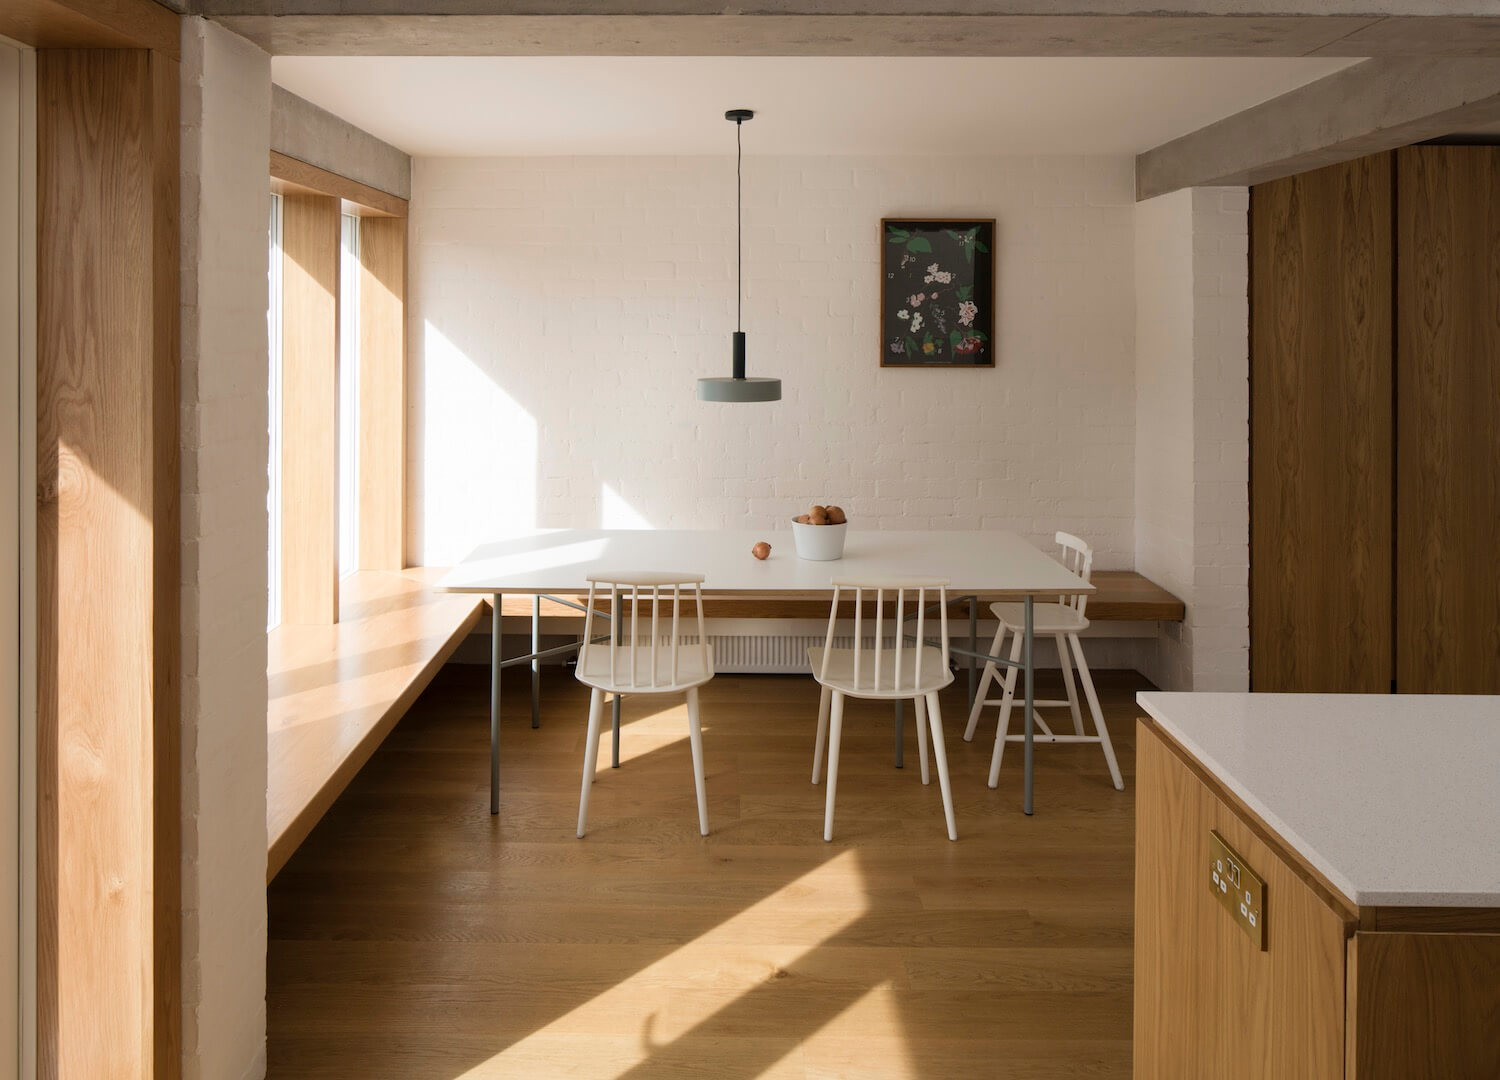 est living dublin house RWK architects 1